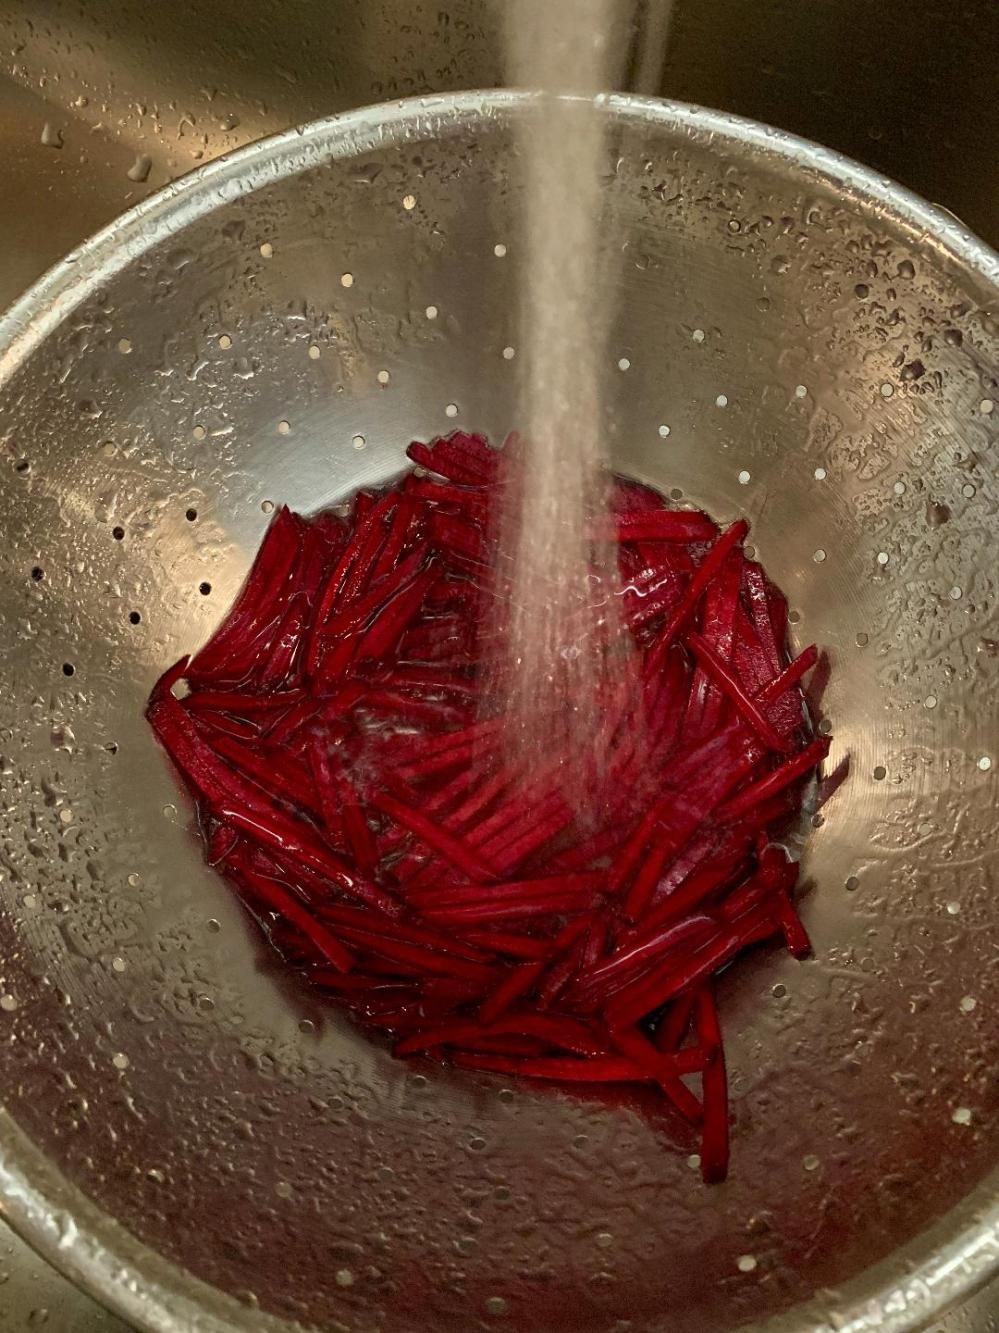 Rinse the Beets Throughly